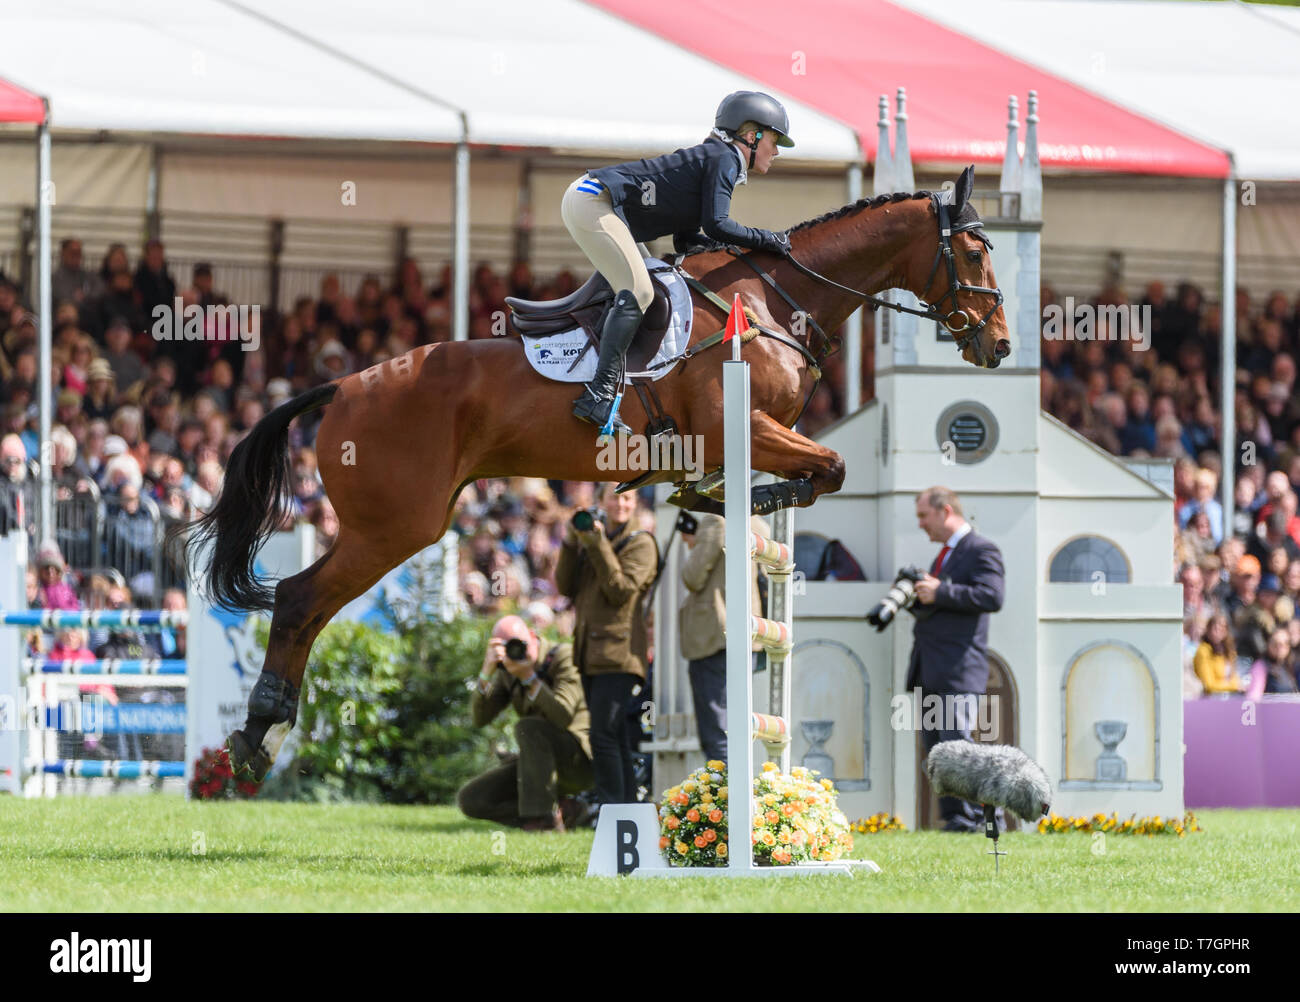 Imogen Murray and IVAR GOODEN during the showjumping phase, Mitsubishi Motors Badminton Horse Trials, Gloucestershire, 2019 - Stock Image